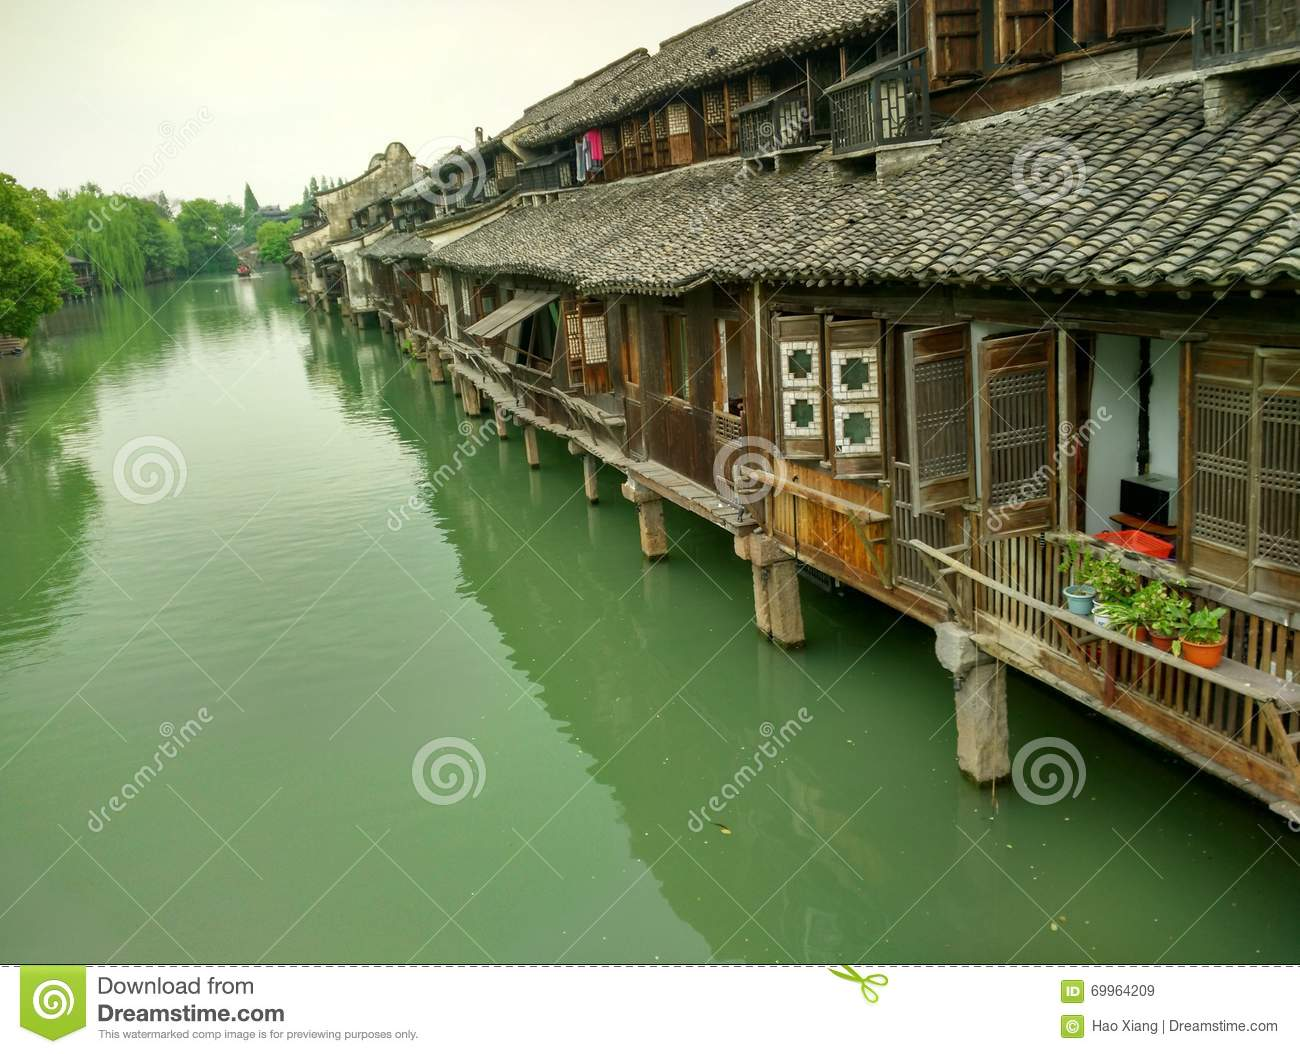 China Wuzhen, Tongxiang City, Zhejiang Province Stock Photo.